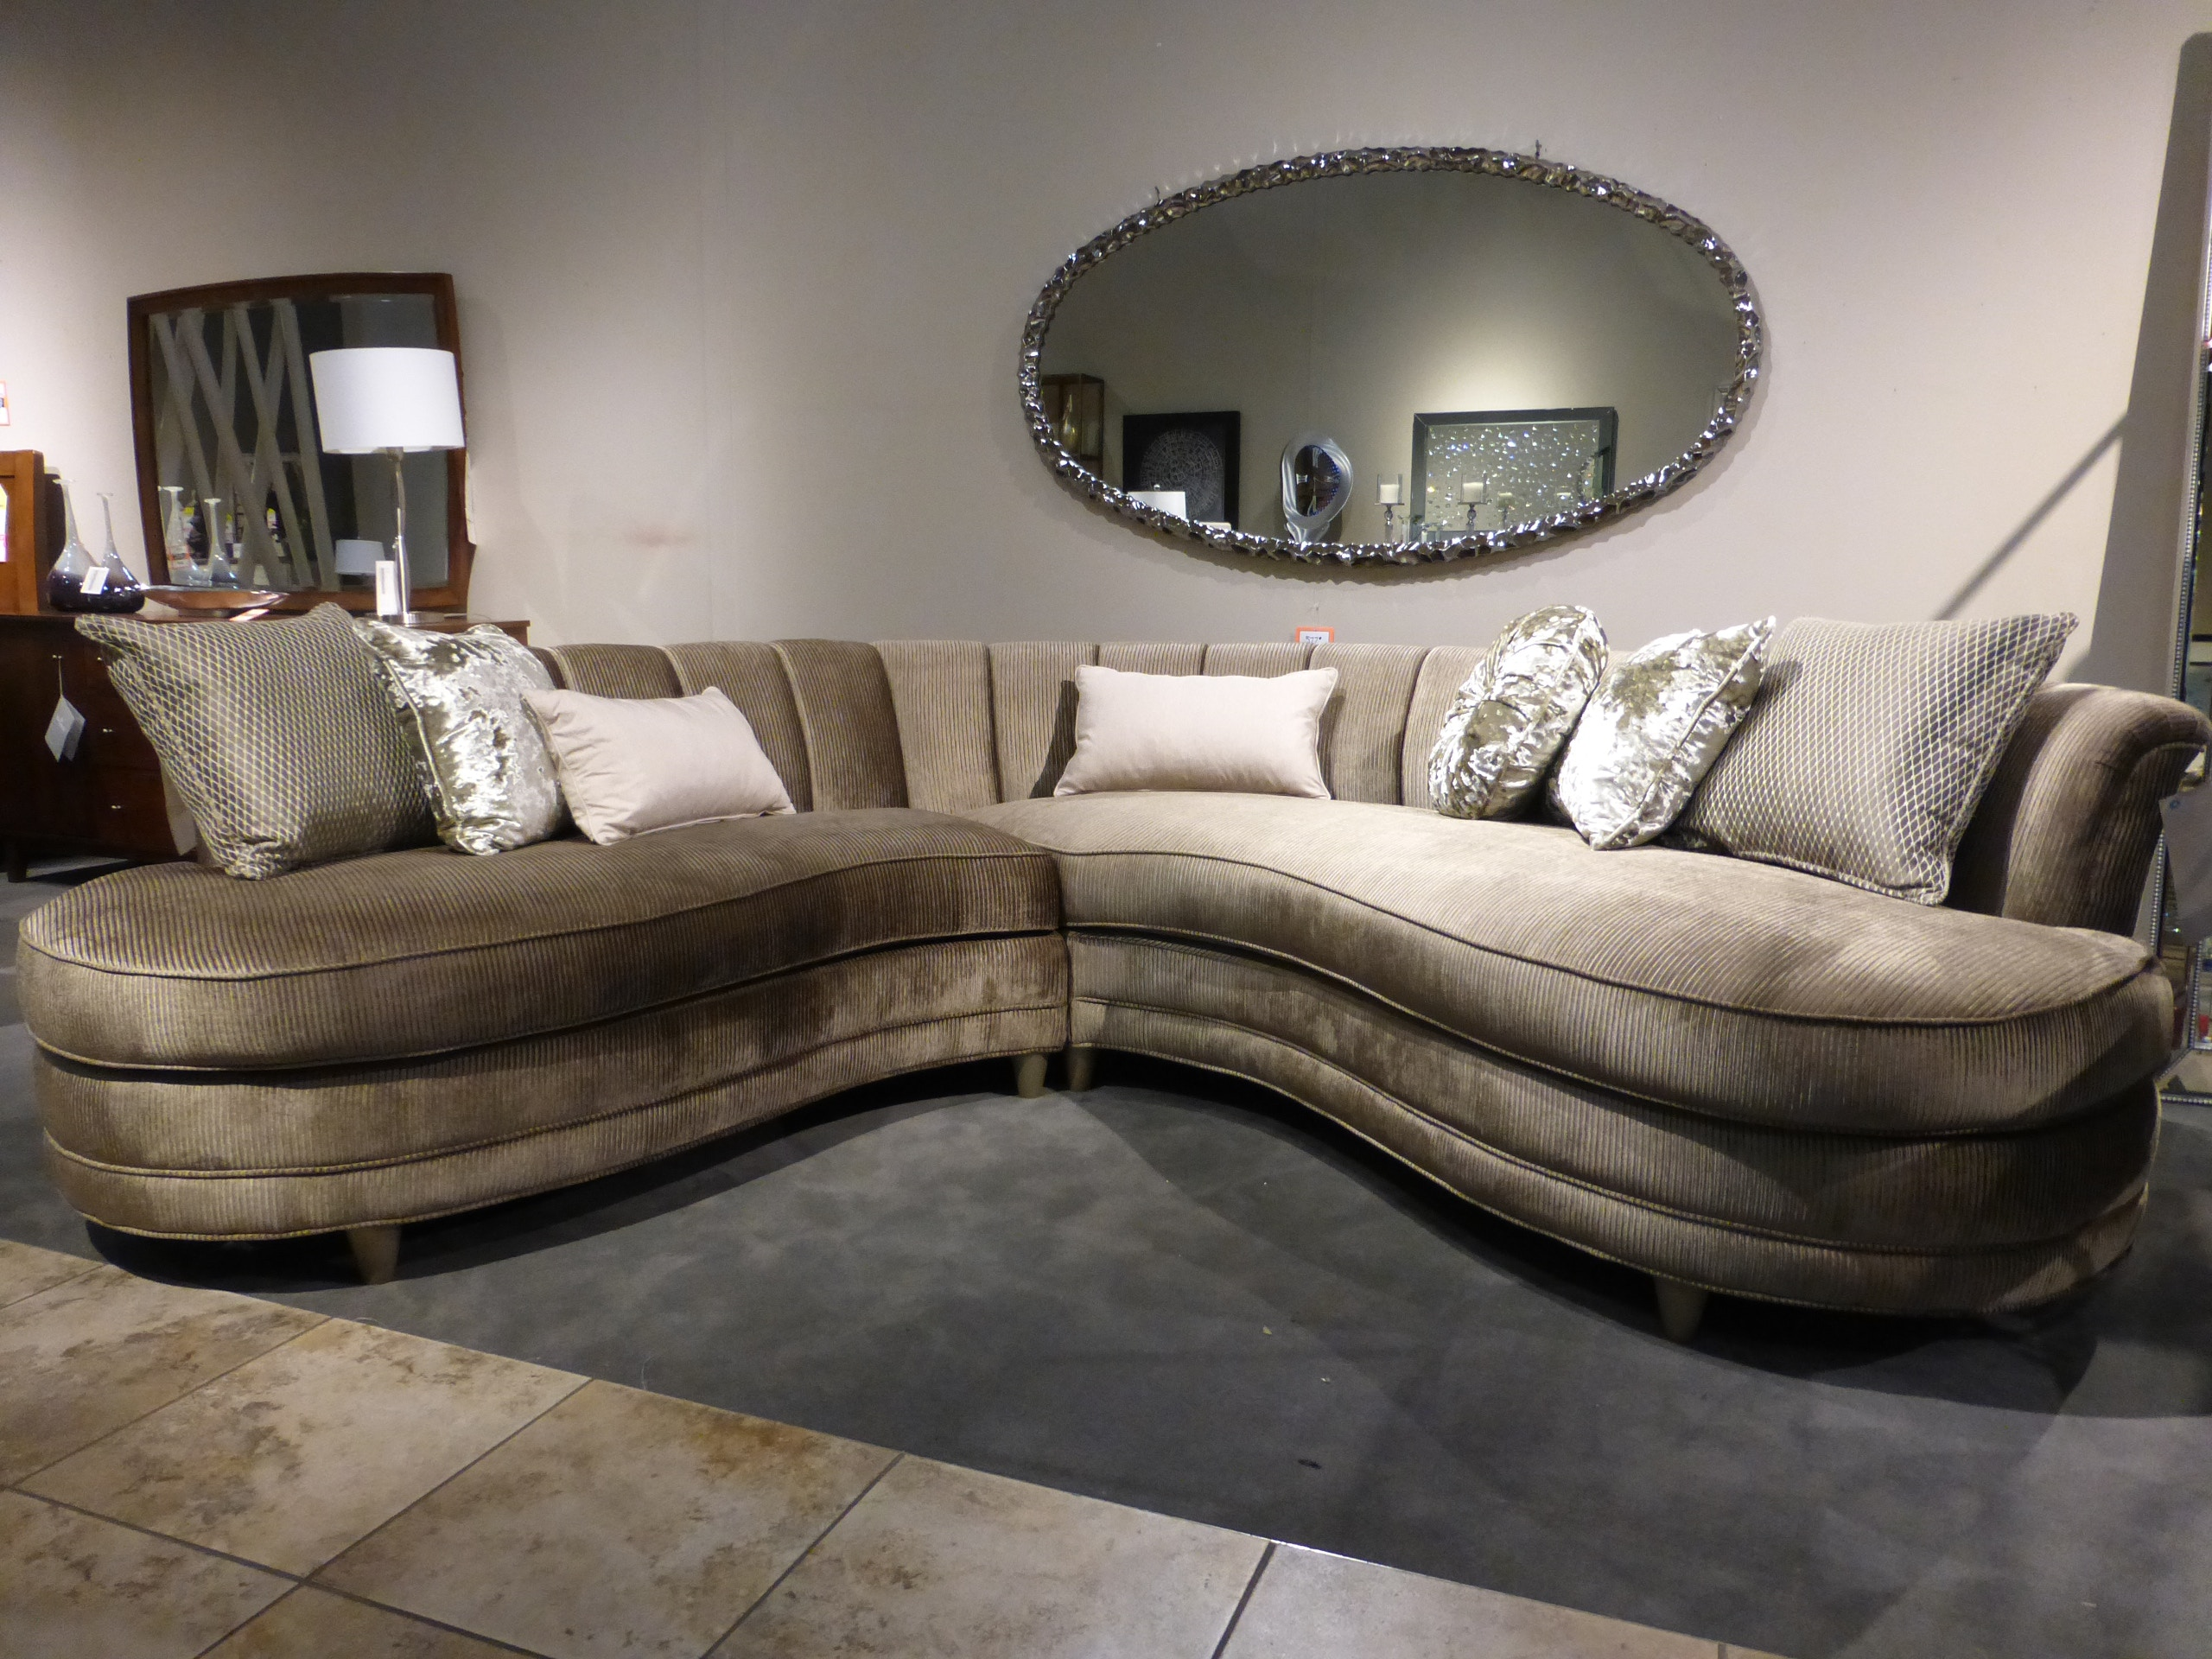 Charming Magnussen Home Living Room Magnussen Furniture Two Piece Rosslyn Sectional  U4066 2PC At Carol House Furniture